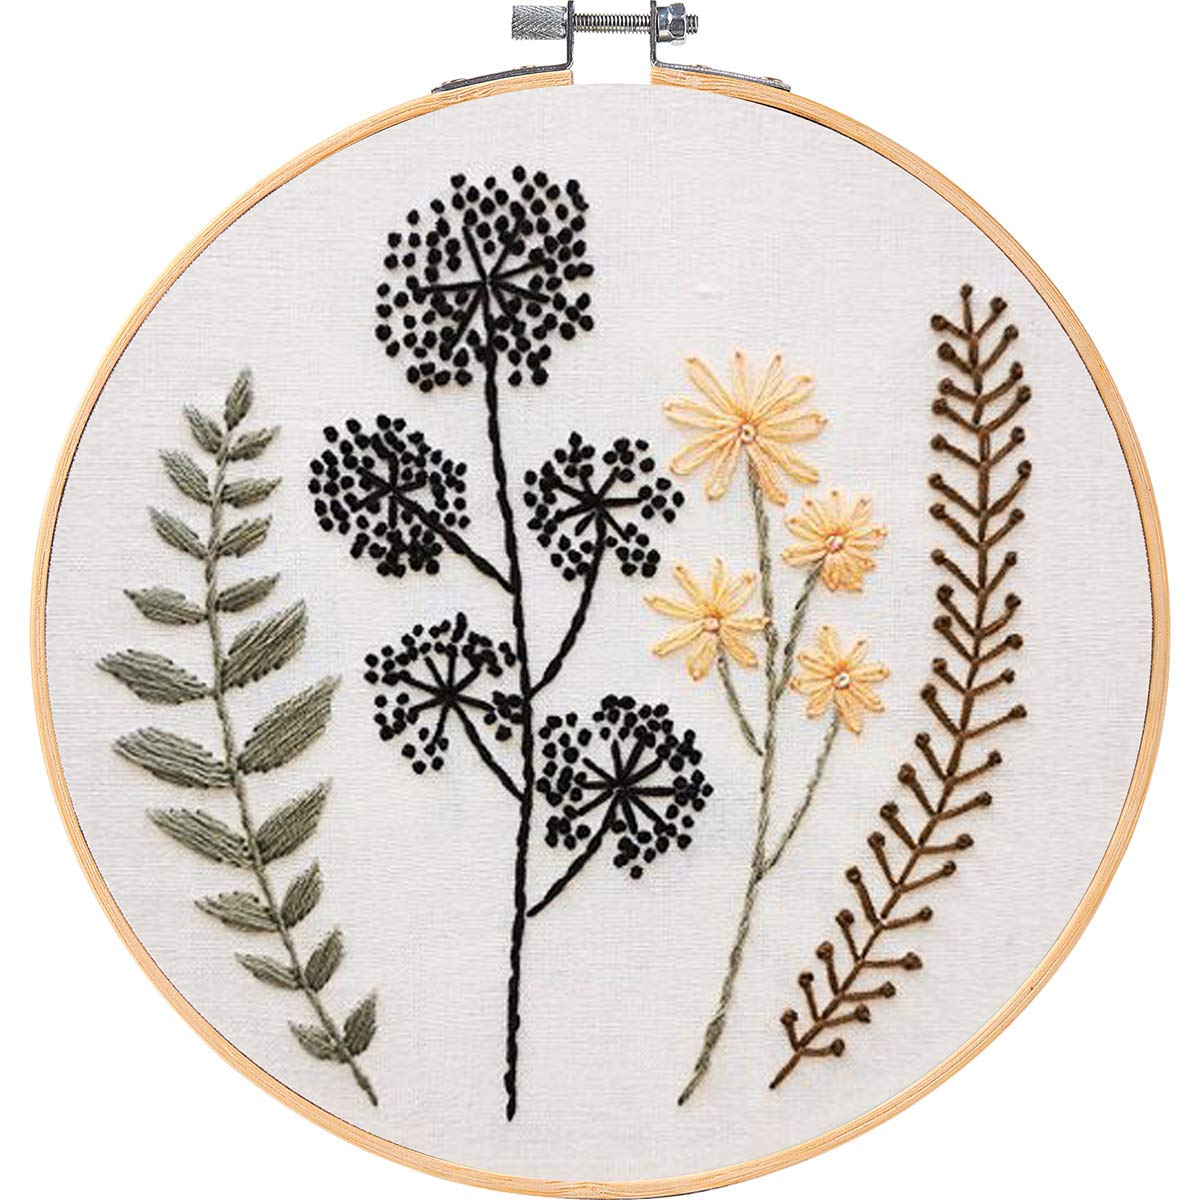 MEIAN Embroidery Kit for Adults Beginners with Flower Stamped Cross Stitch Starter